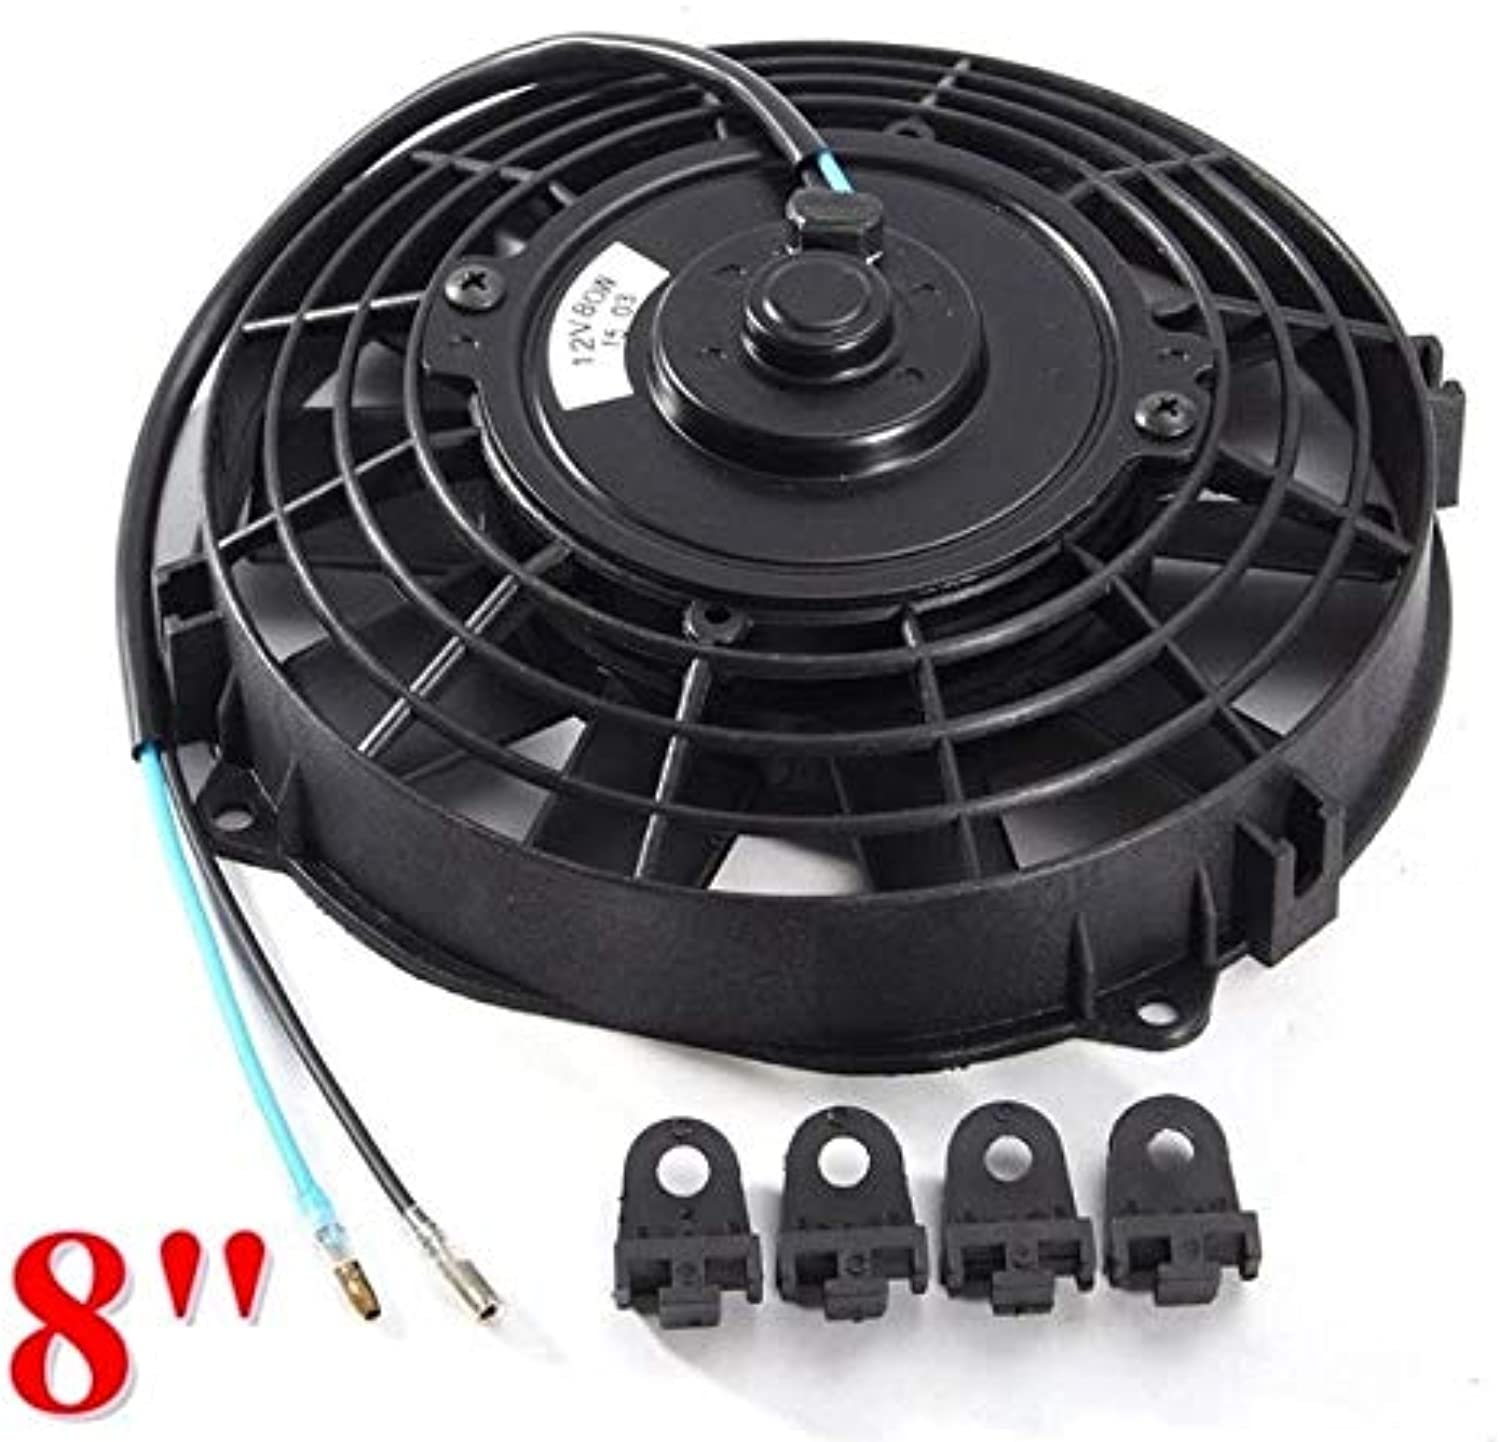 Cocas Universal 8 910 12 14 Inch Water Oil Cooler 12V 80W Pull Push Straight Blade Electric Cooling Radiator Fan for Car Motorcycle